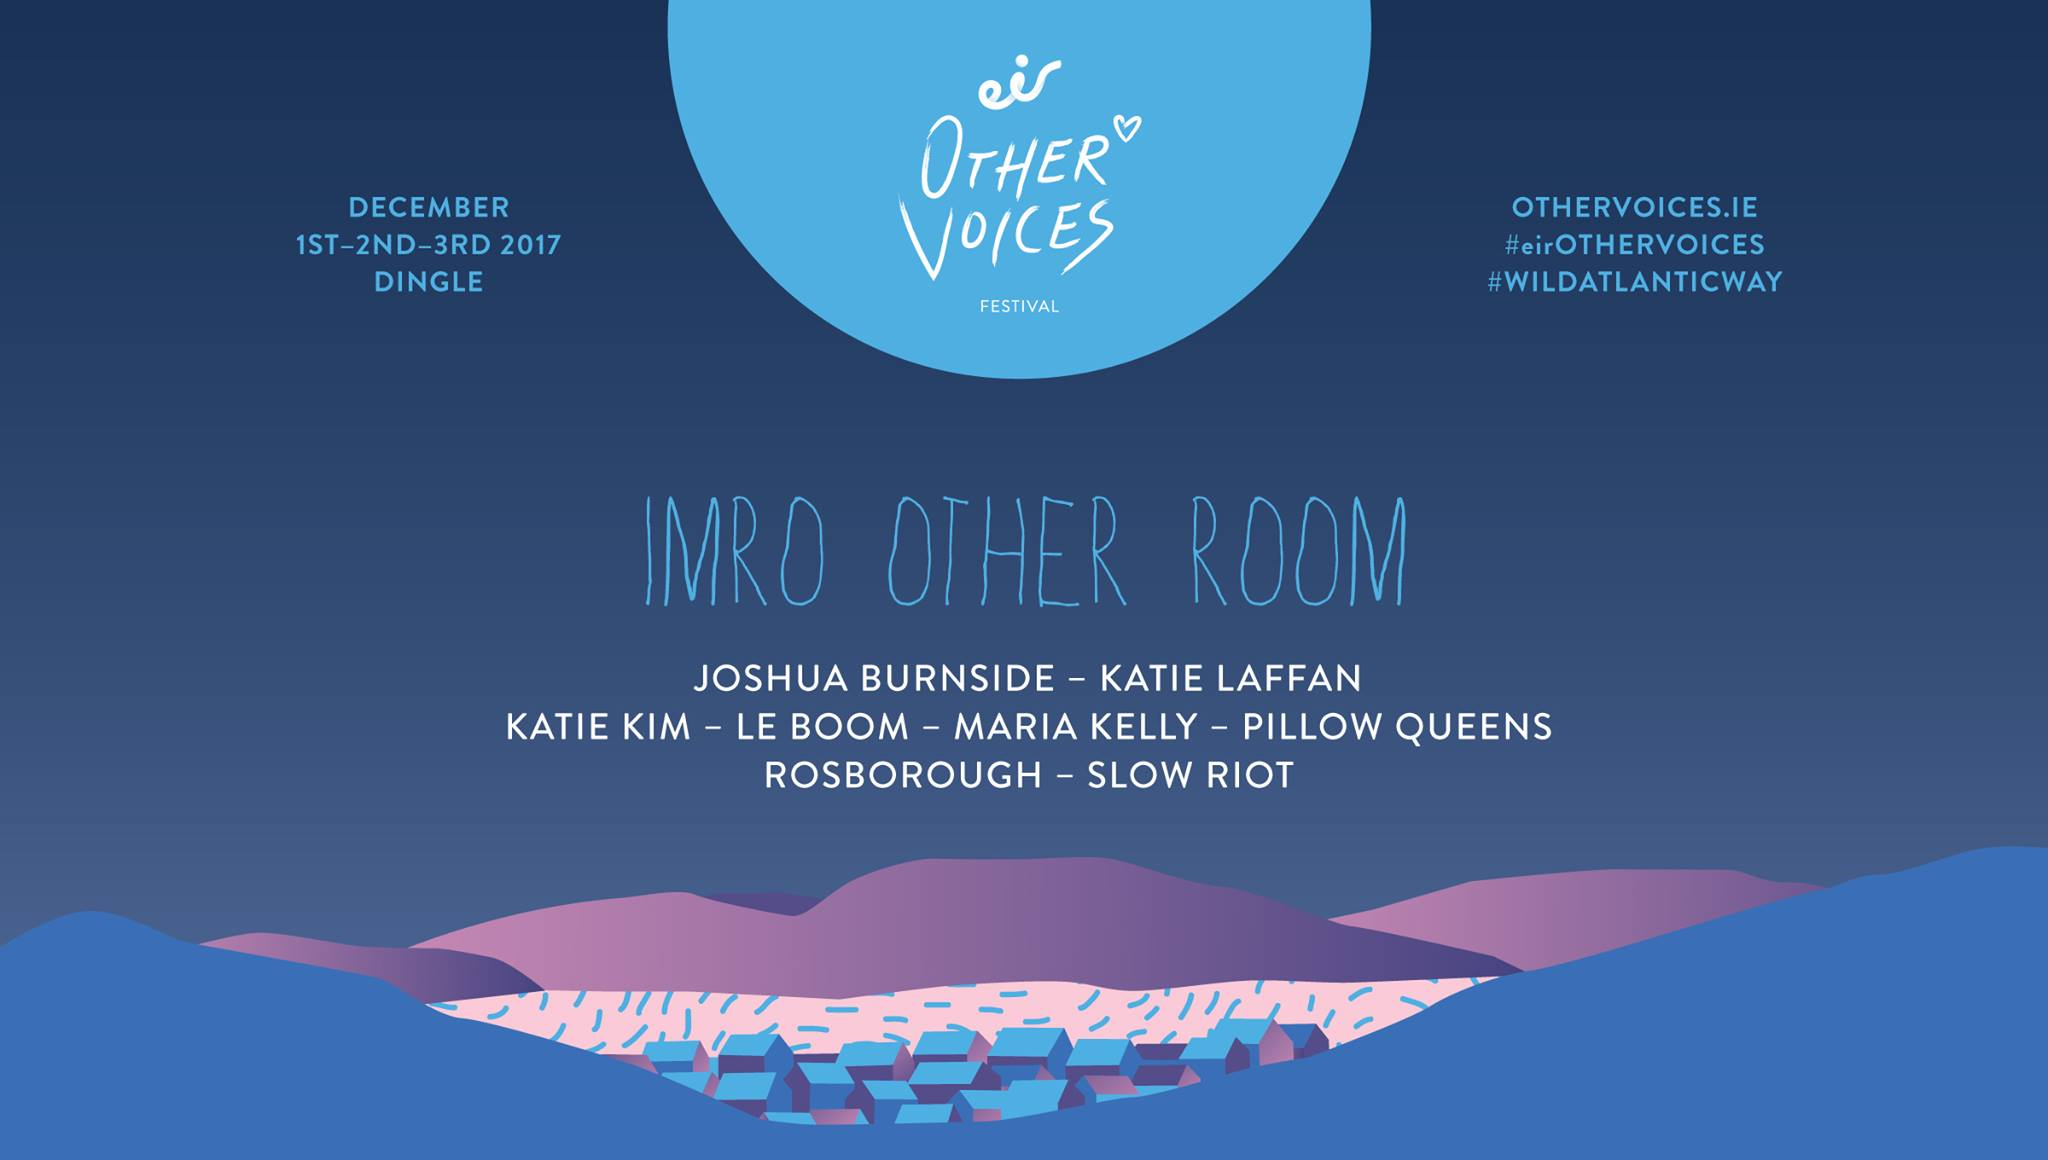 IMRO Other Room Acts Announced for Eir Other Voices Festival 2017